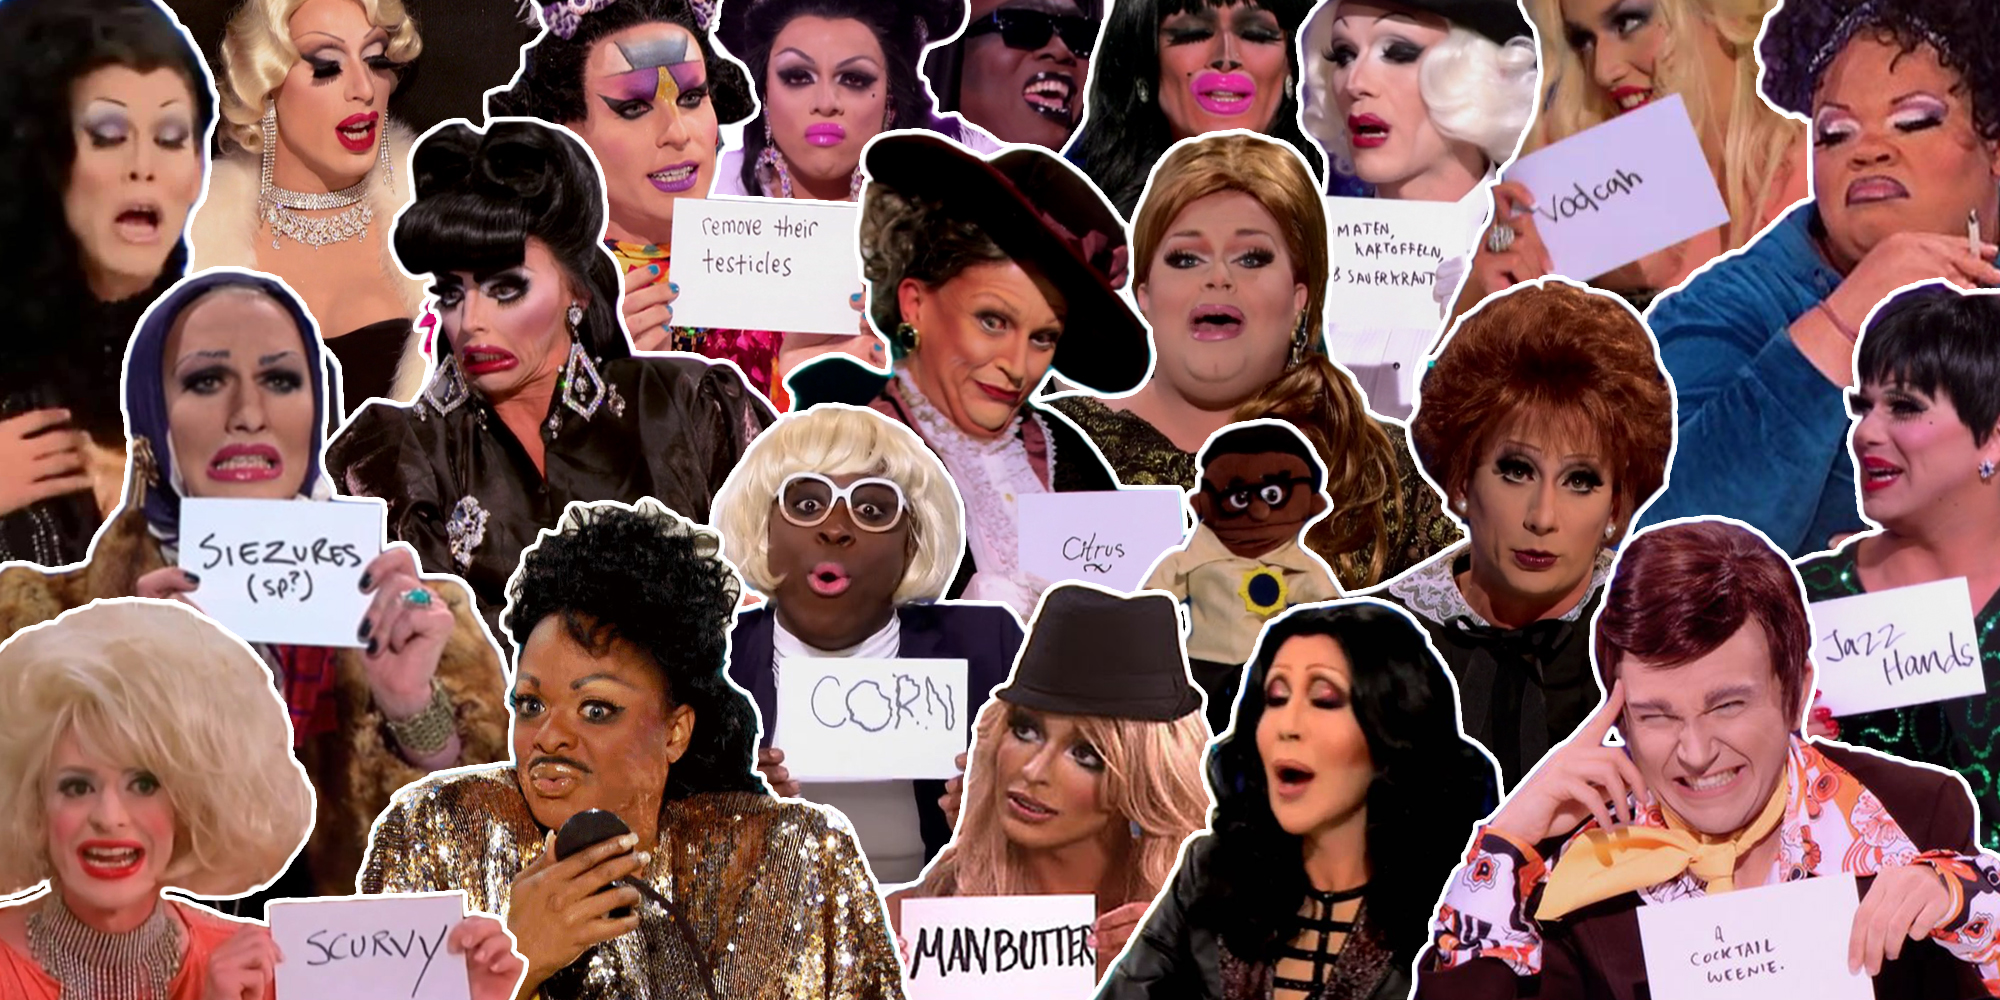 'How (Blank) Was She?!' The Definitive Ranking of 'Drag Race' Snatch Game Episodes by Season